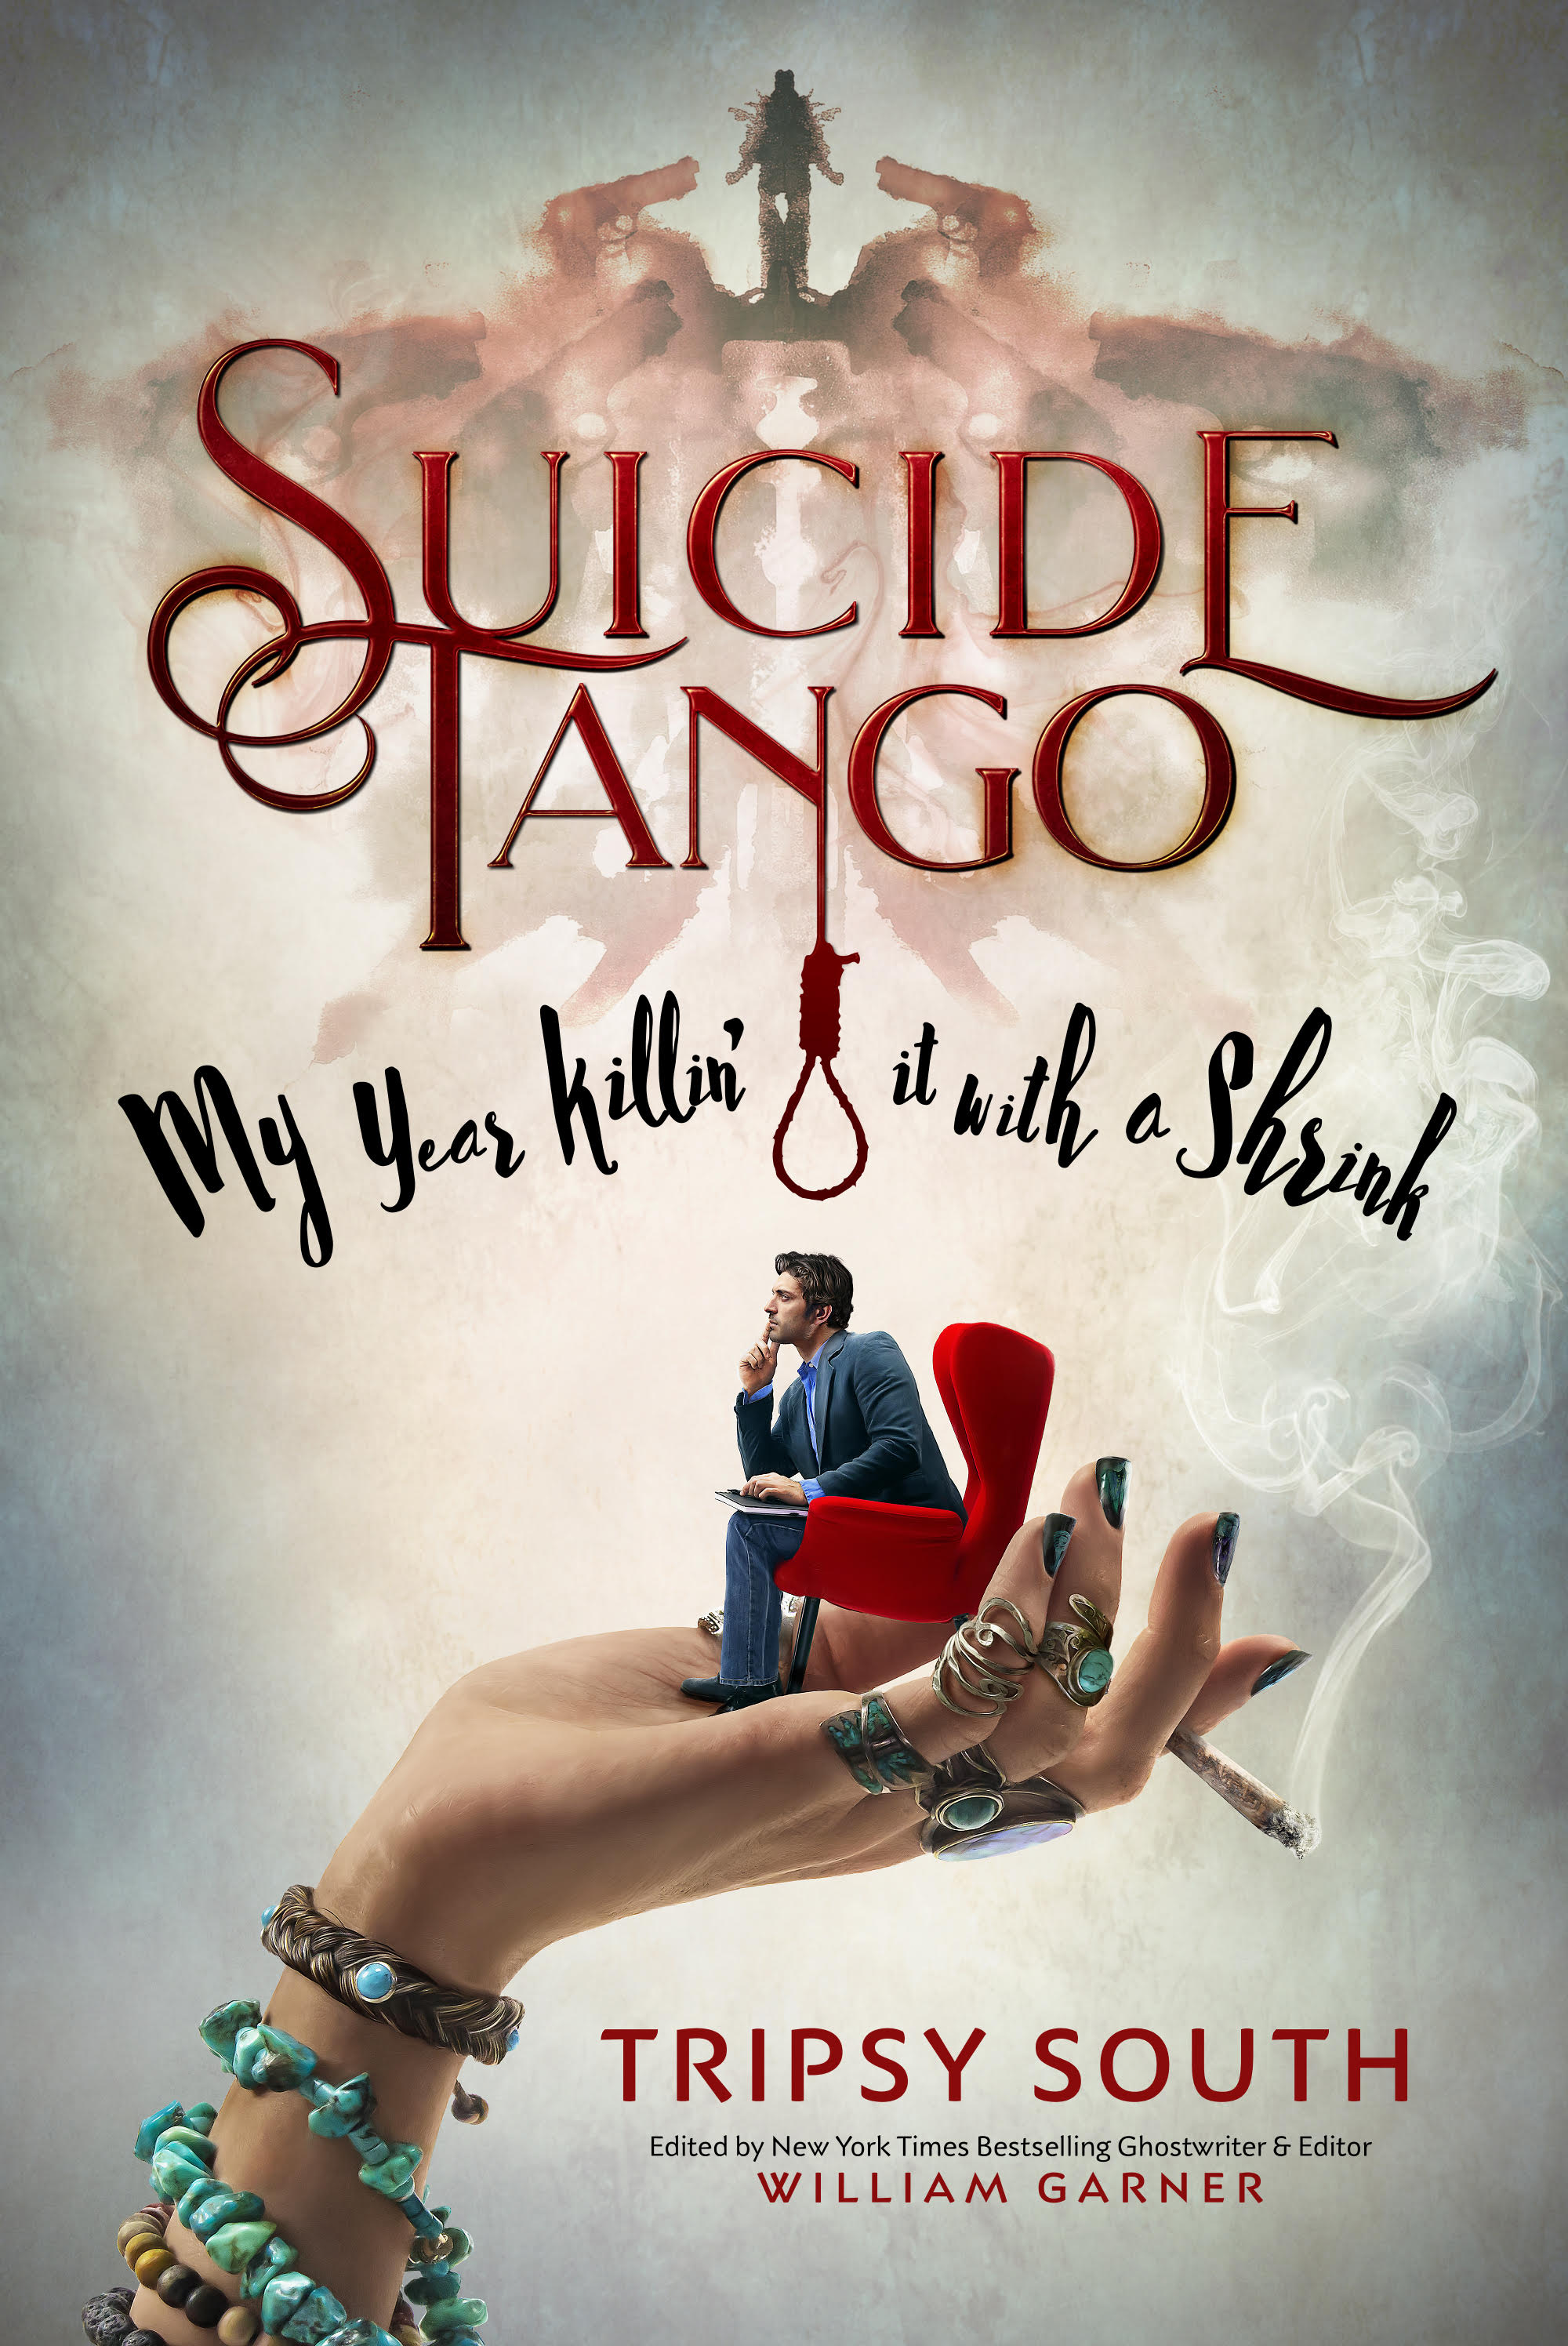 SUICIDE TANGO: My Year Killin' It With A Shrink